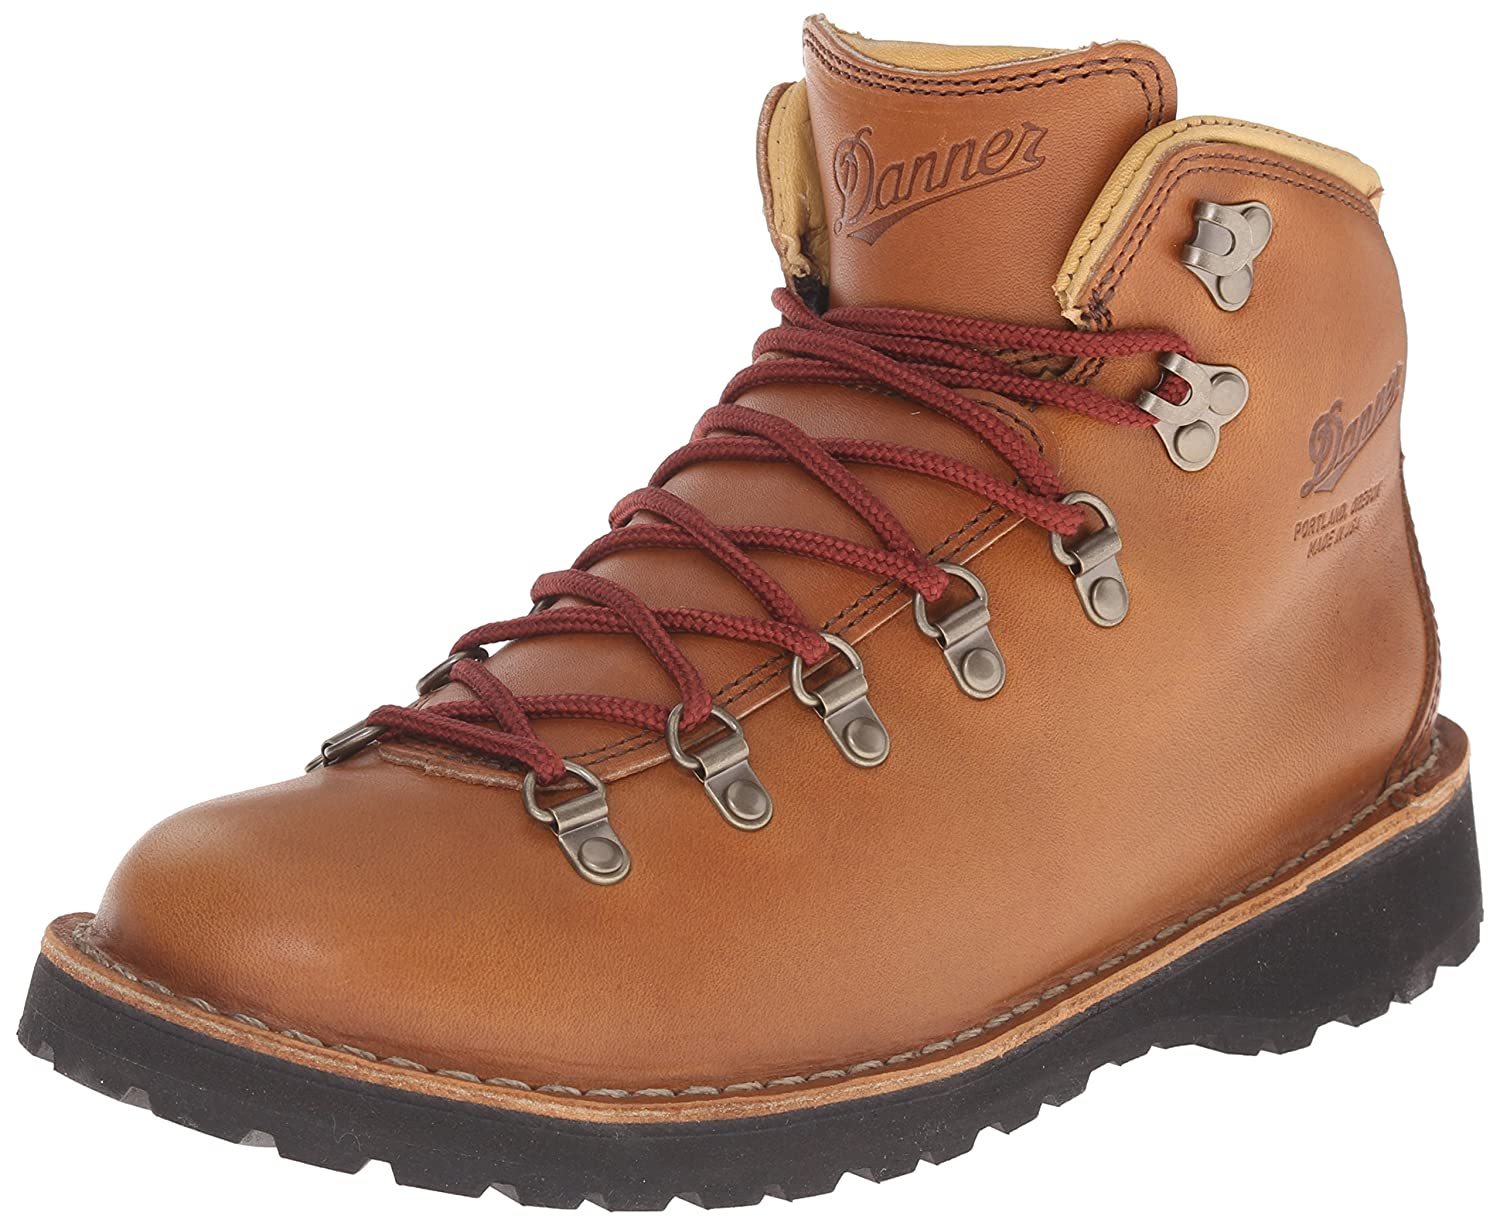 Danner Women's Mountain Pass Lifestyle Boot B00V9V7E58 7 B(M) US|Rio Latigo